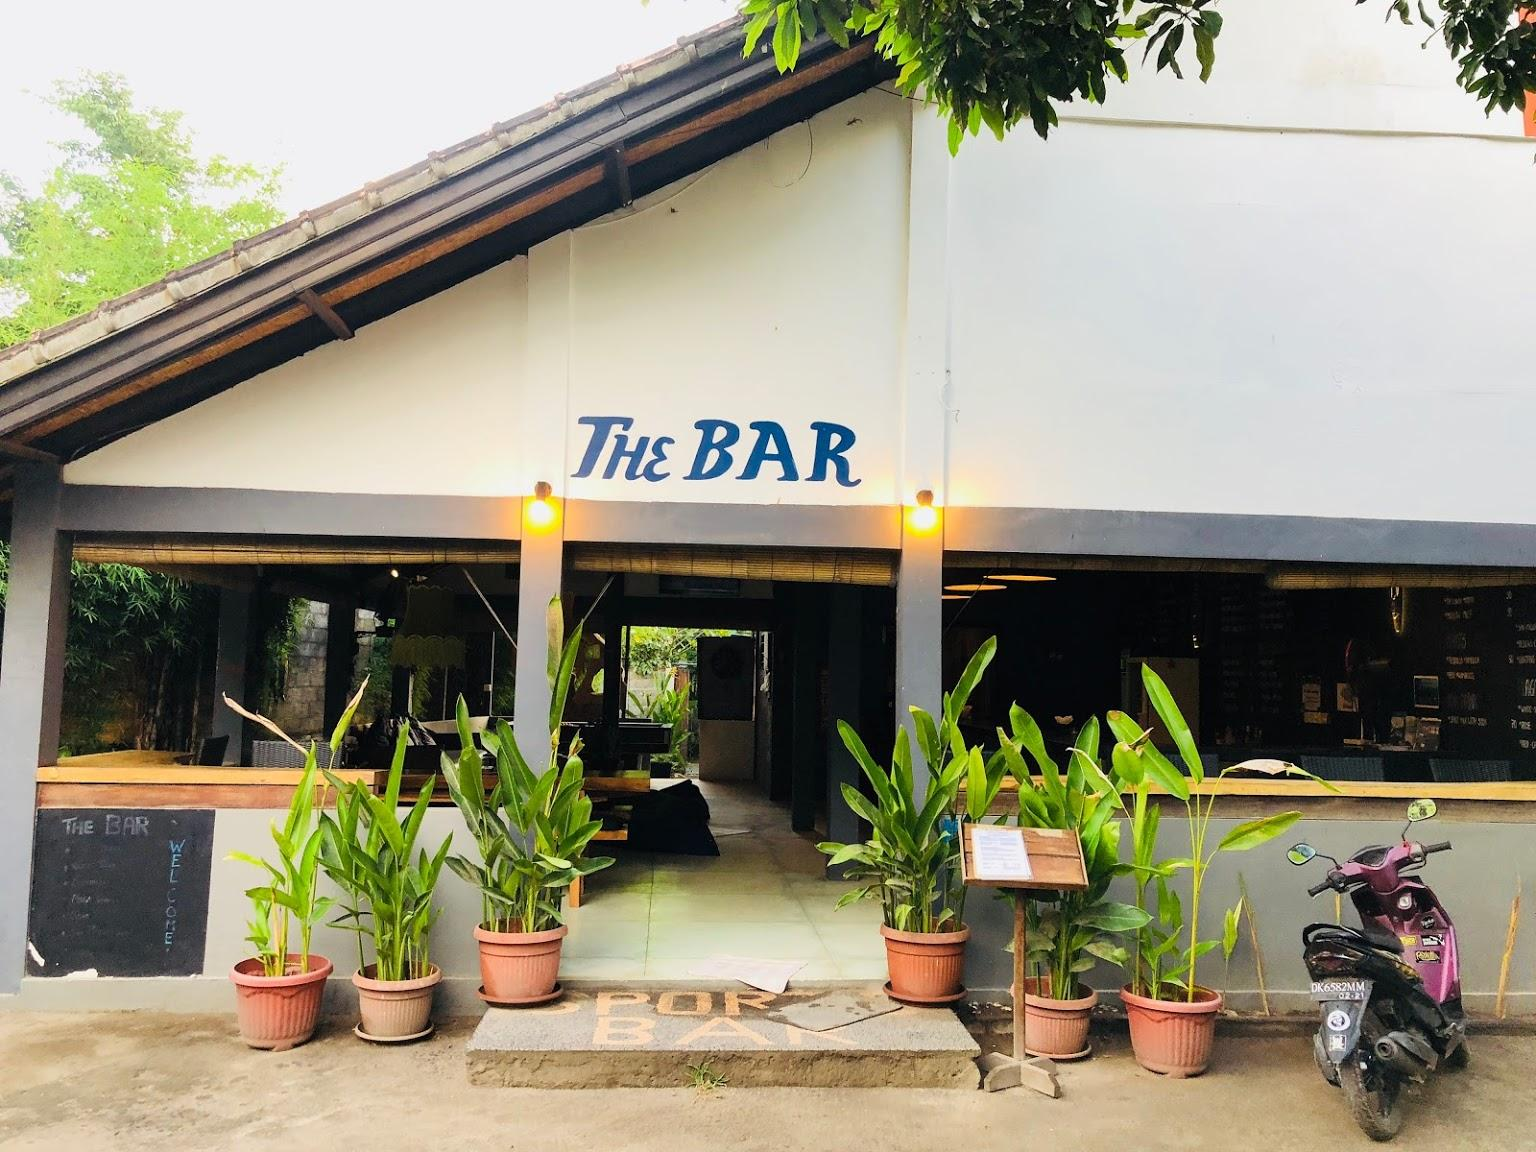 The Bar Lembongan